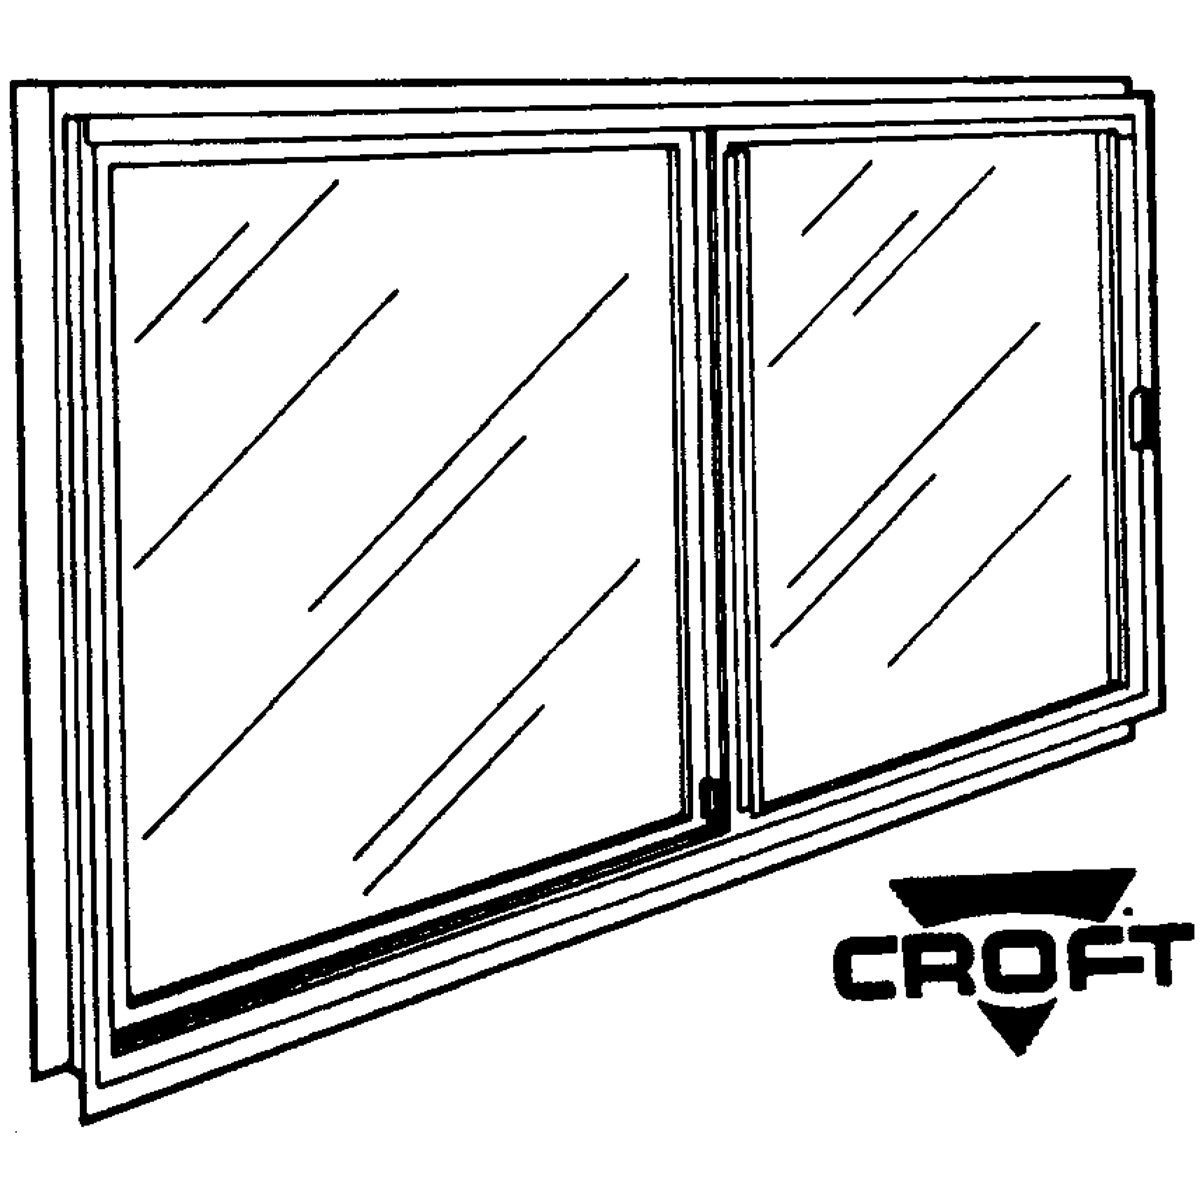 70W 46X22 SLIDING WINDOW - F0181713 by Croft Llc